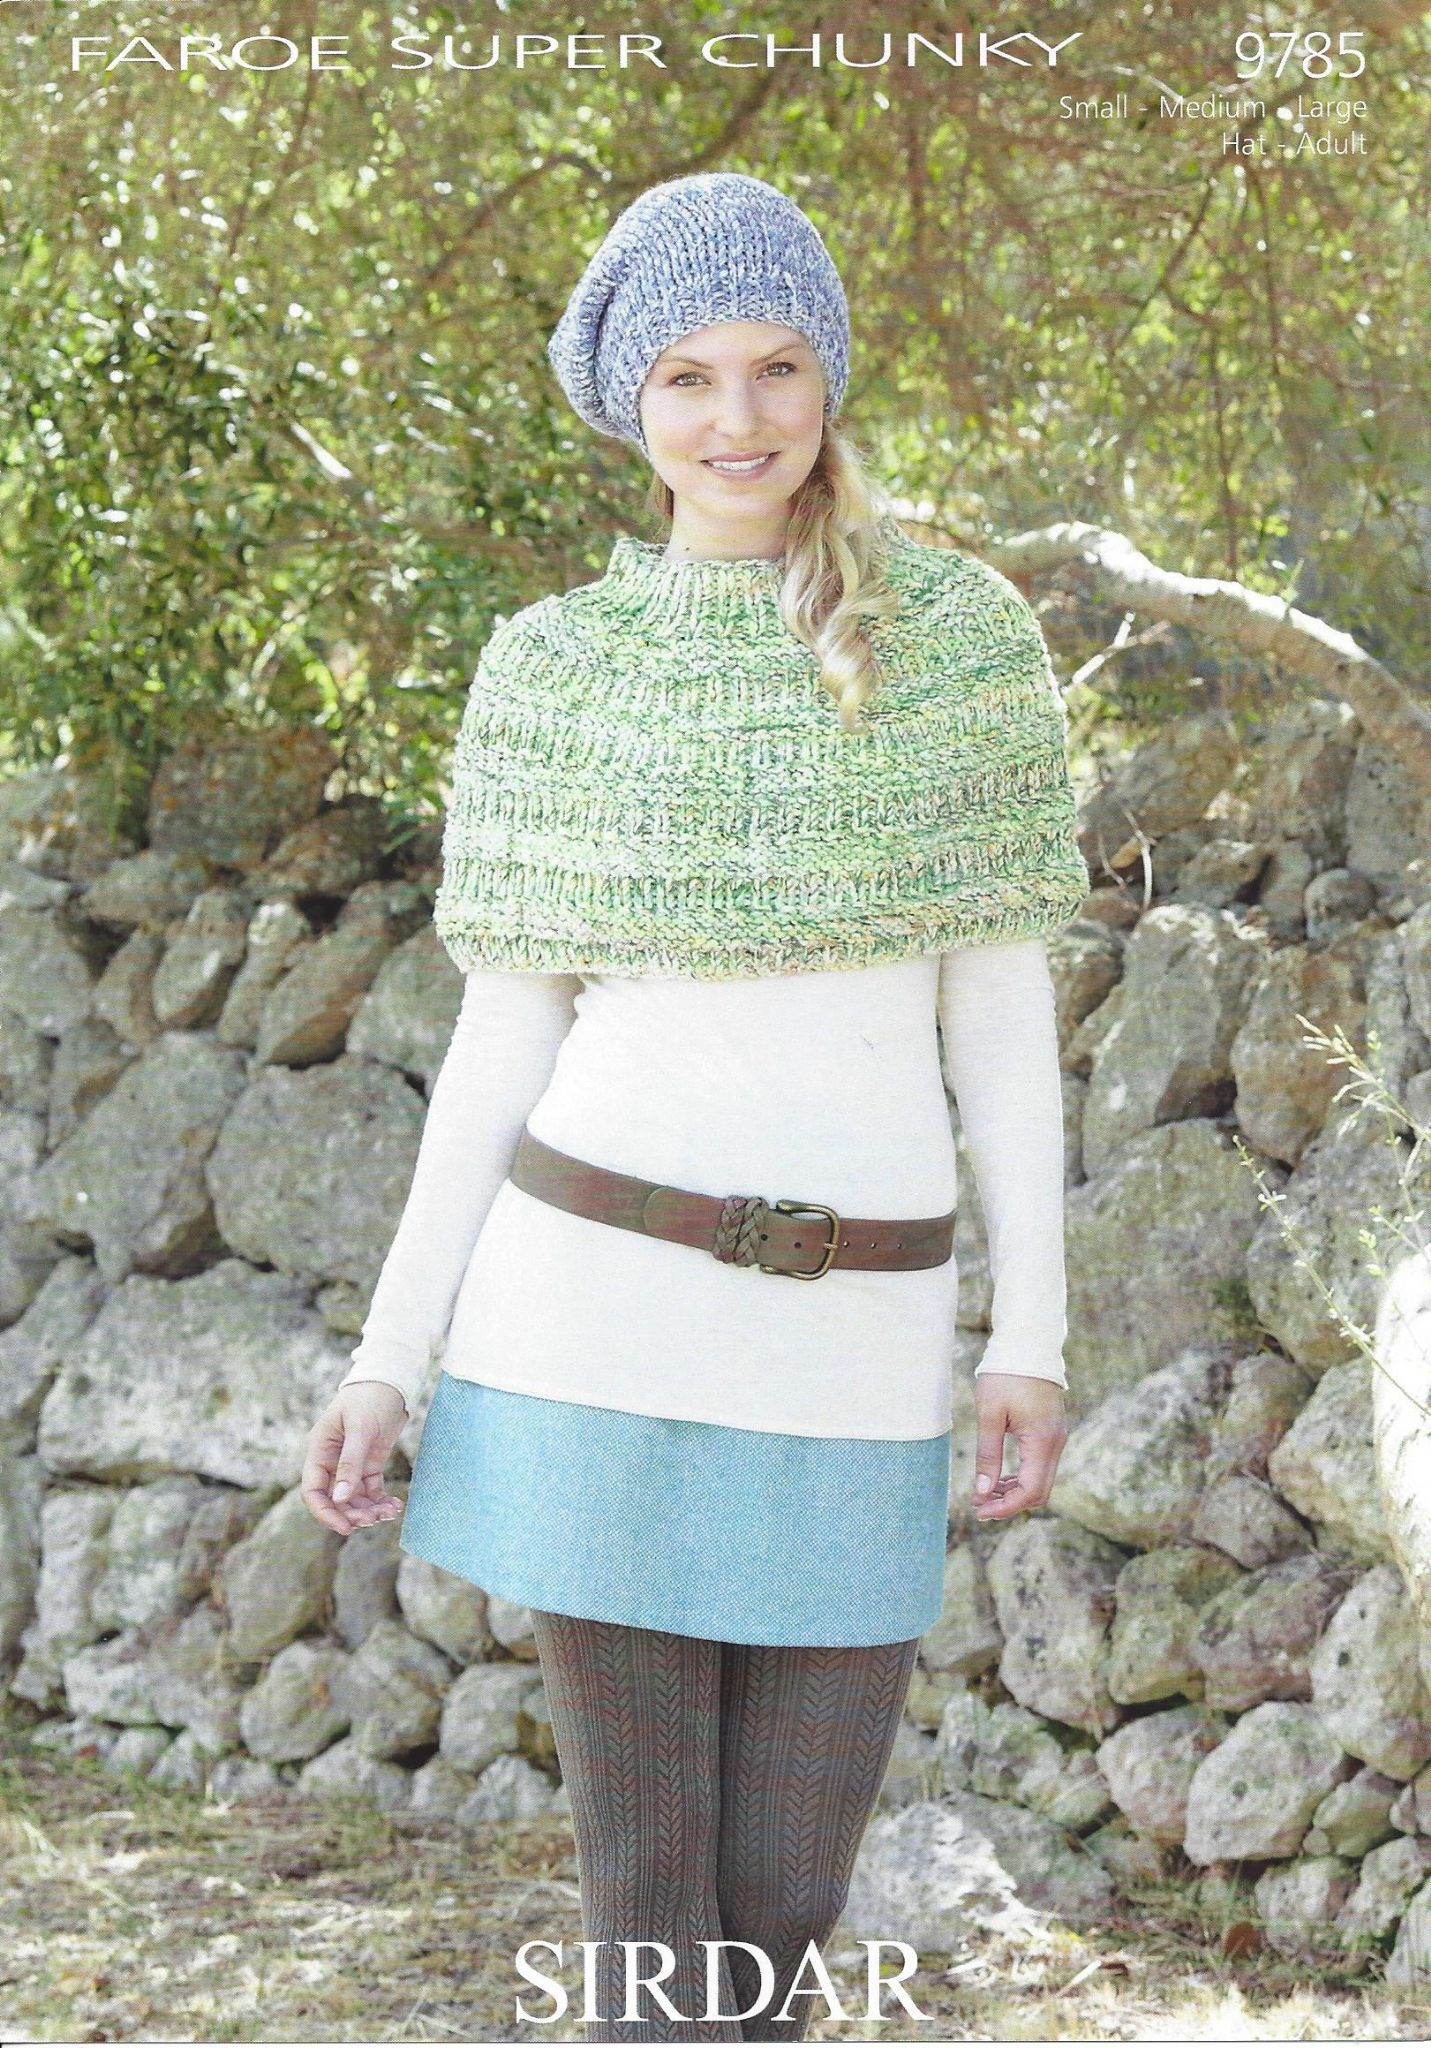 Sirdar Knitting Pattern : Sirdar Faroe Super Chunky - 9785 Poncho & Hat Knitting Pattern